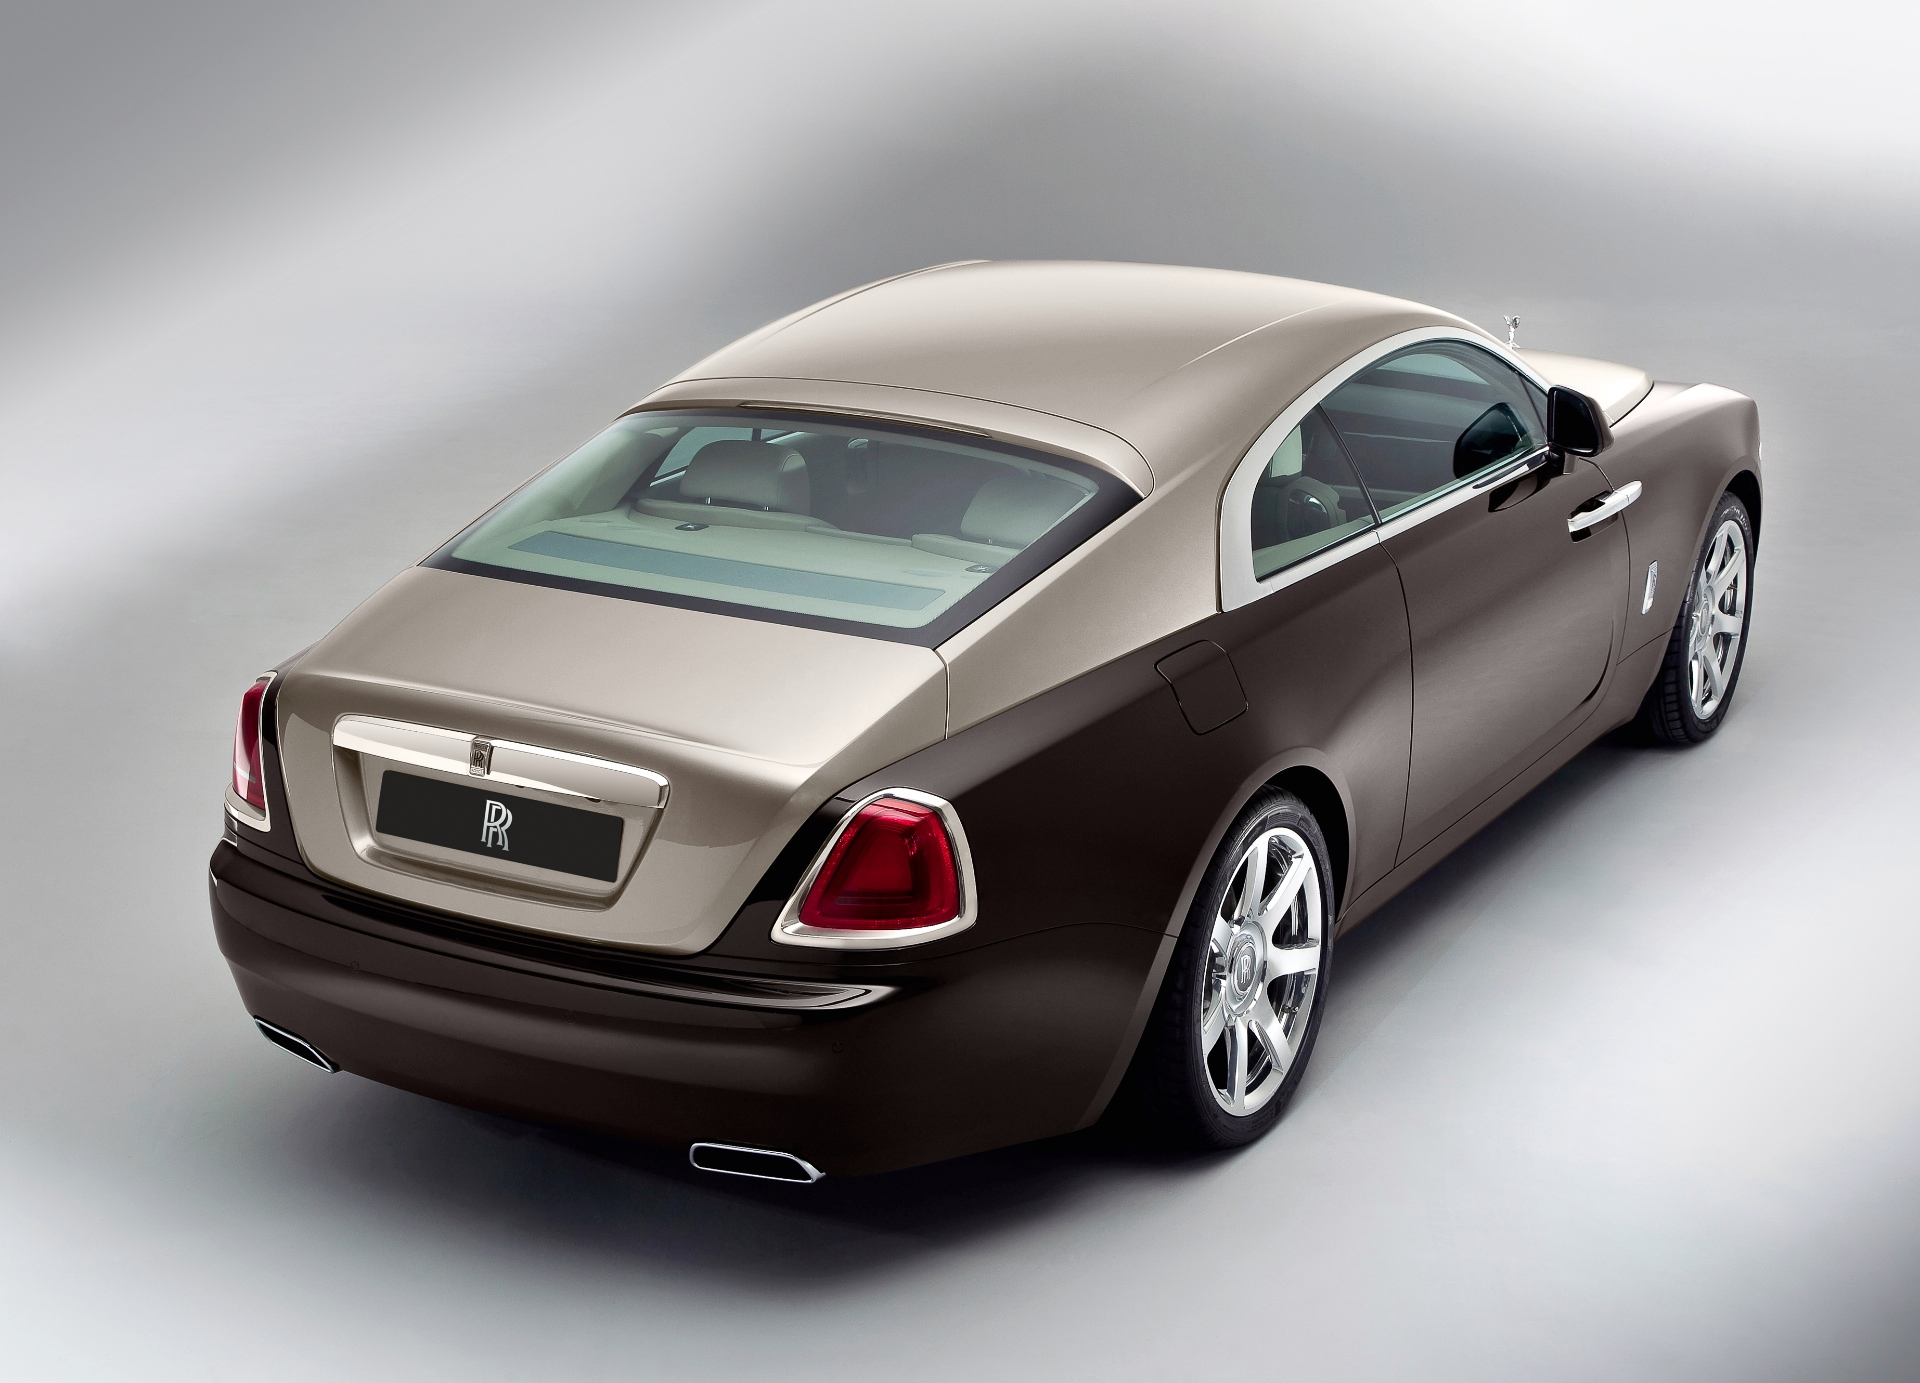 rolls royce ghost how much with Rolls Royce Wraith 2013 on 4 in addition 2015 Rolls Royce Maharaja Phantom Drophead Coupe Tribute Indian Maharajas also 7 moreover 2017 Rolls Royce Wraith Black Badge Its The Business additionally 19.